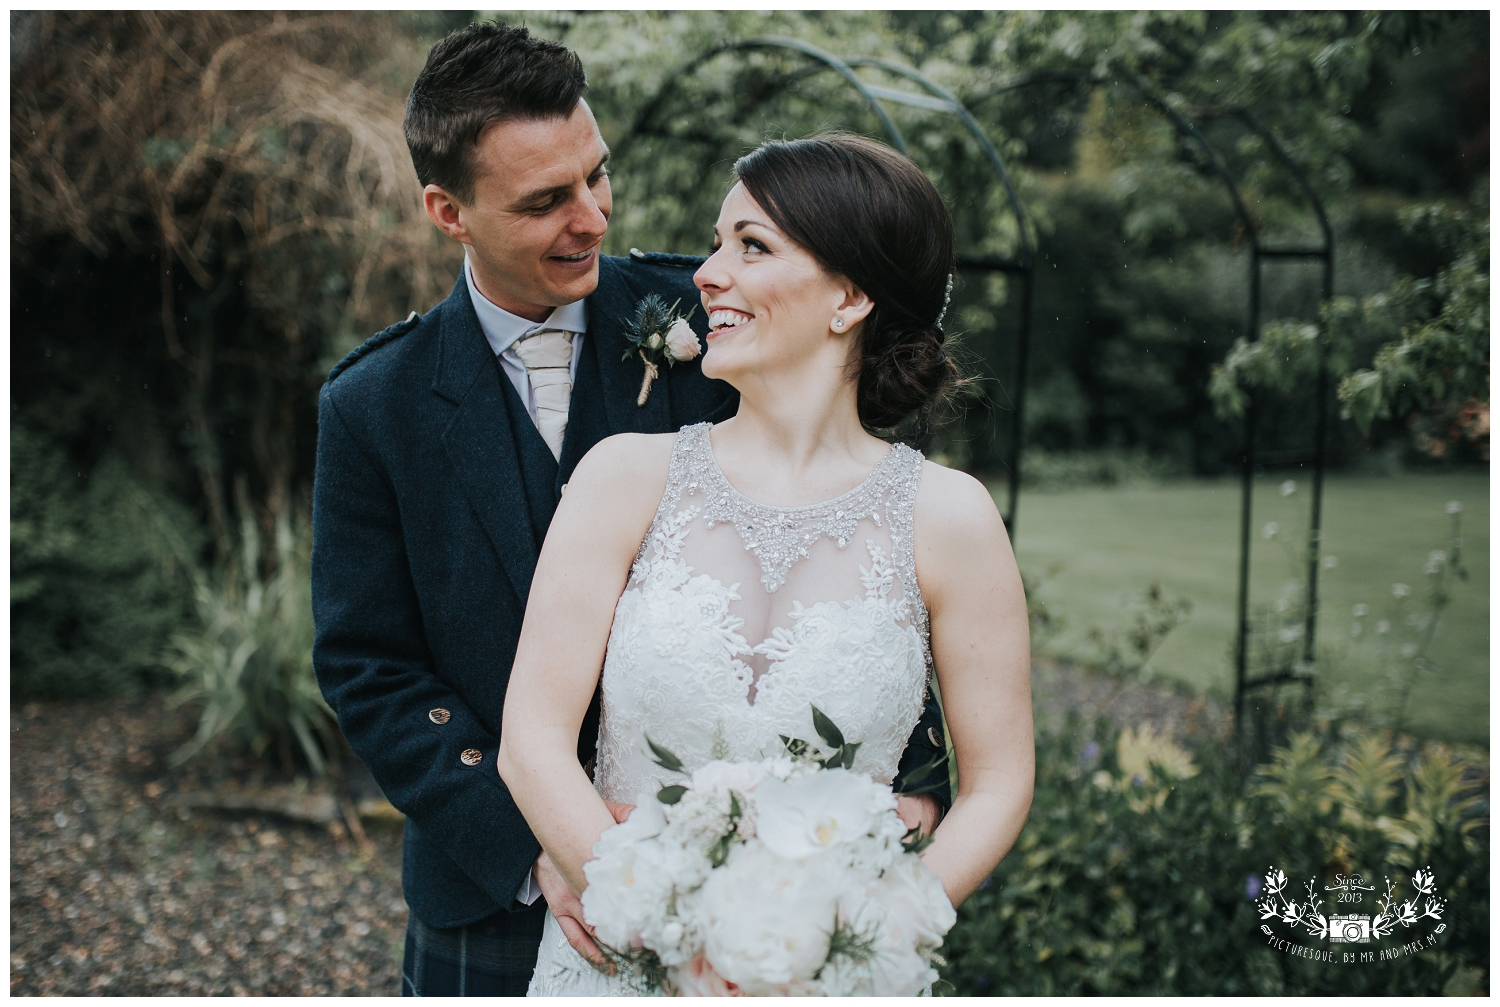 Balbirnie House Wedding, Picturesque by Mr and Mrs M_0042.jpg